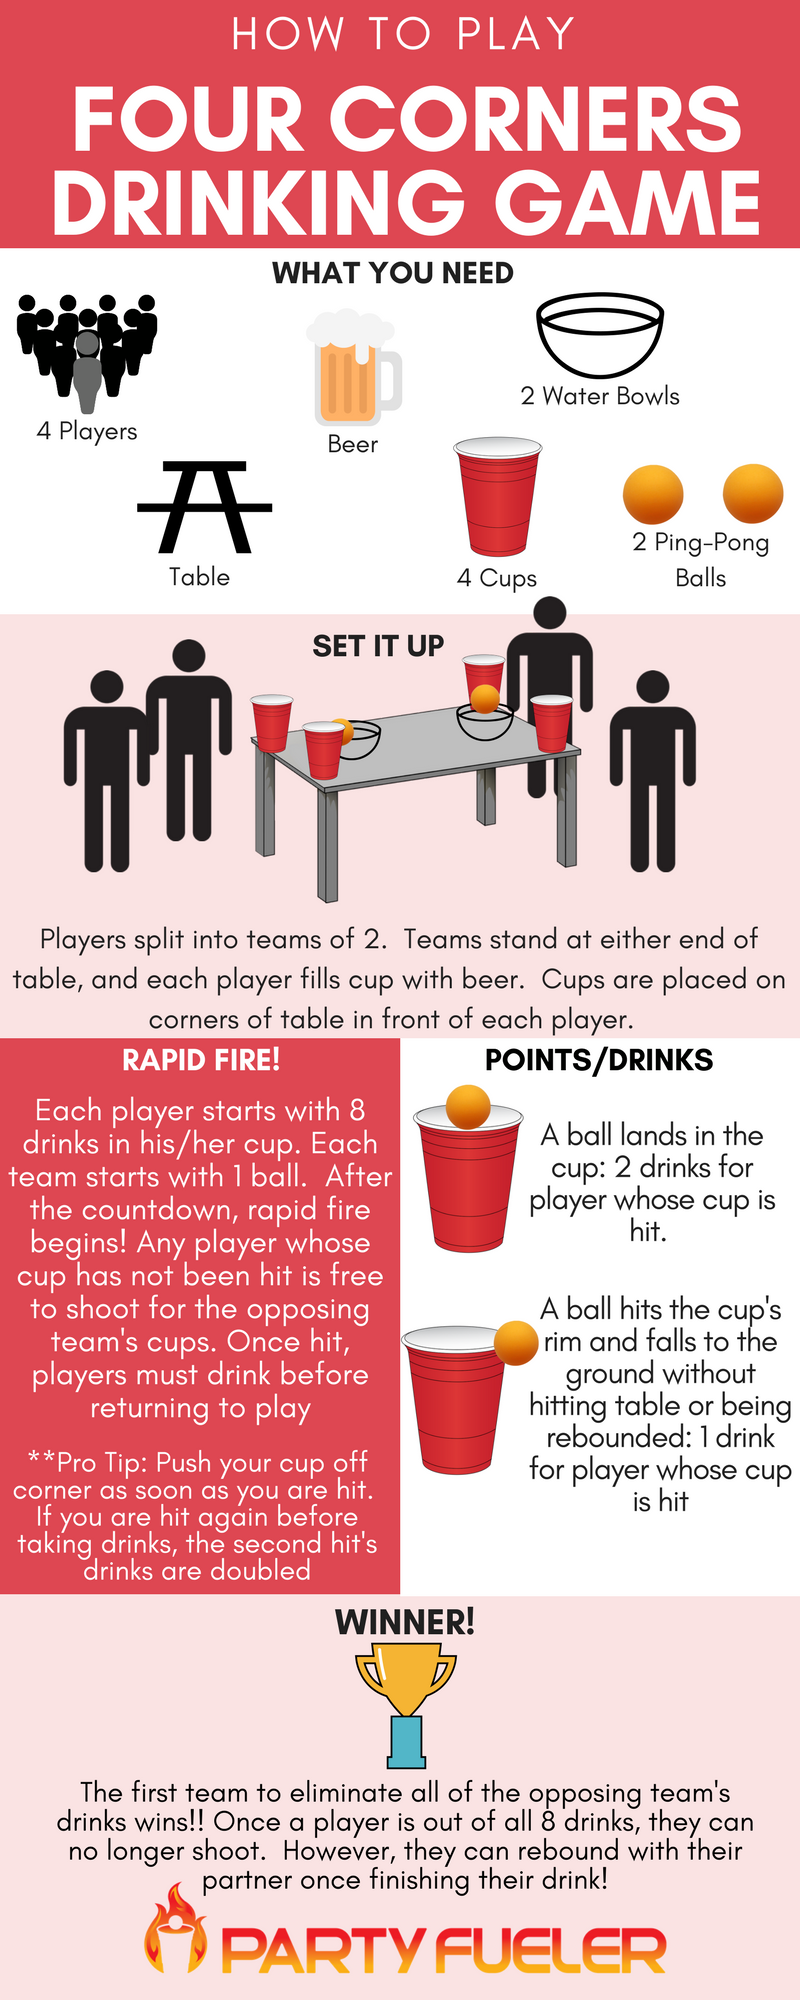 Four Corners Drinking Game Rules